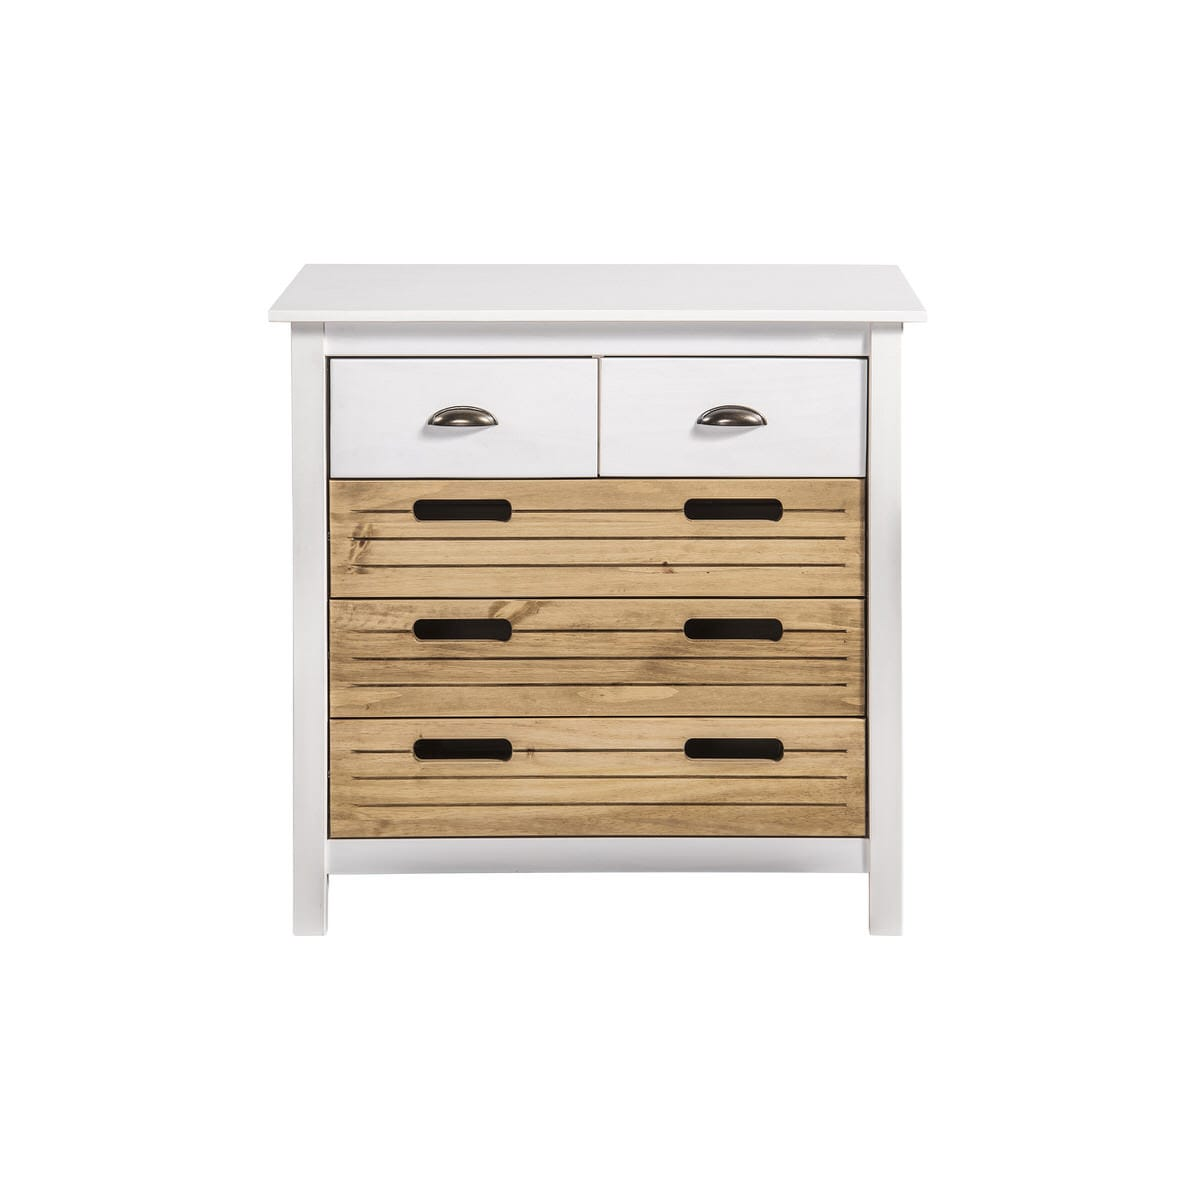 Irving Rustic Mid Century Modern 5 Drawer 31 1 Inch White Natural Wood Wide Dresser 2 0 By Manhattan Comfort